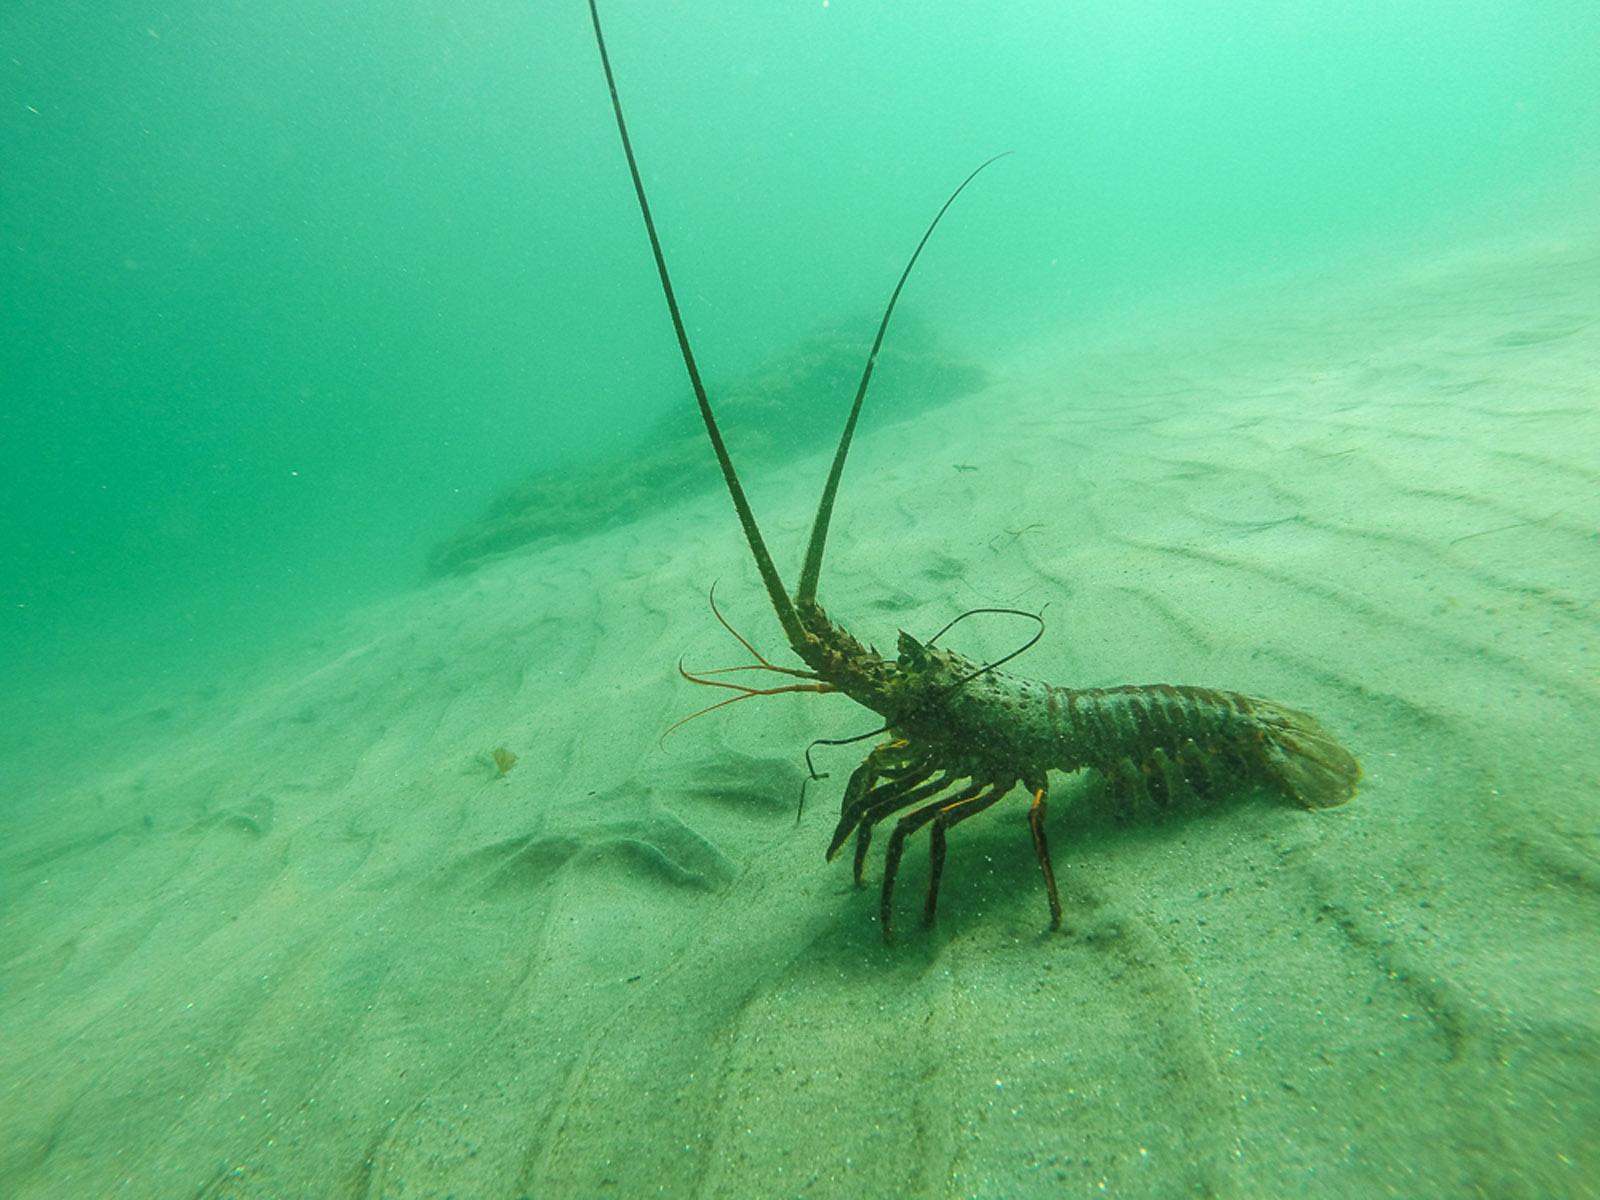 lobster-underwater-photo-by-kate-mansury_29985017702_o